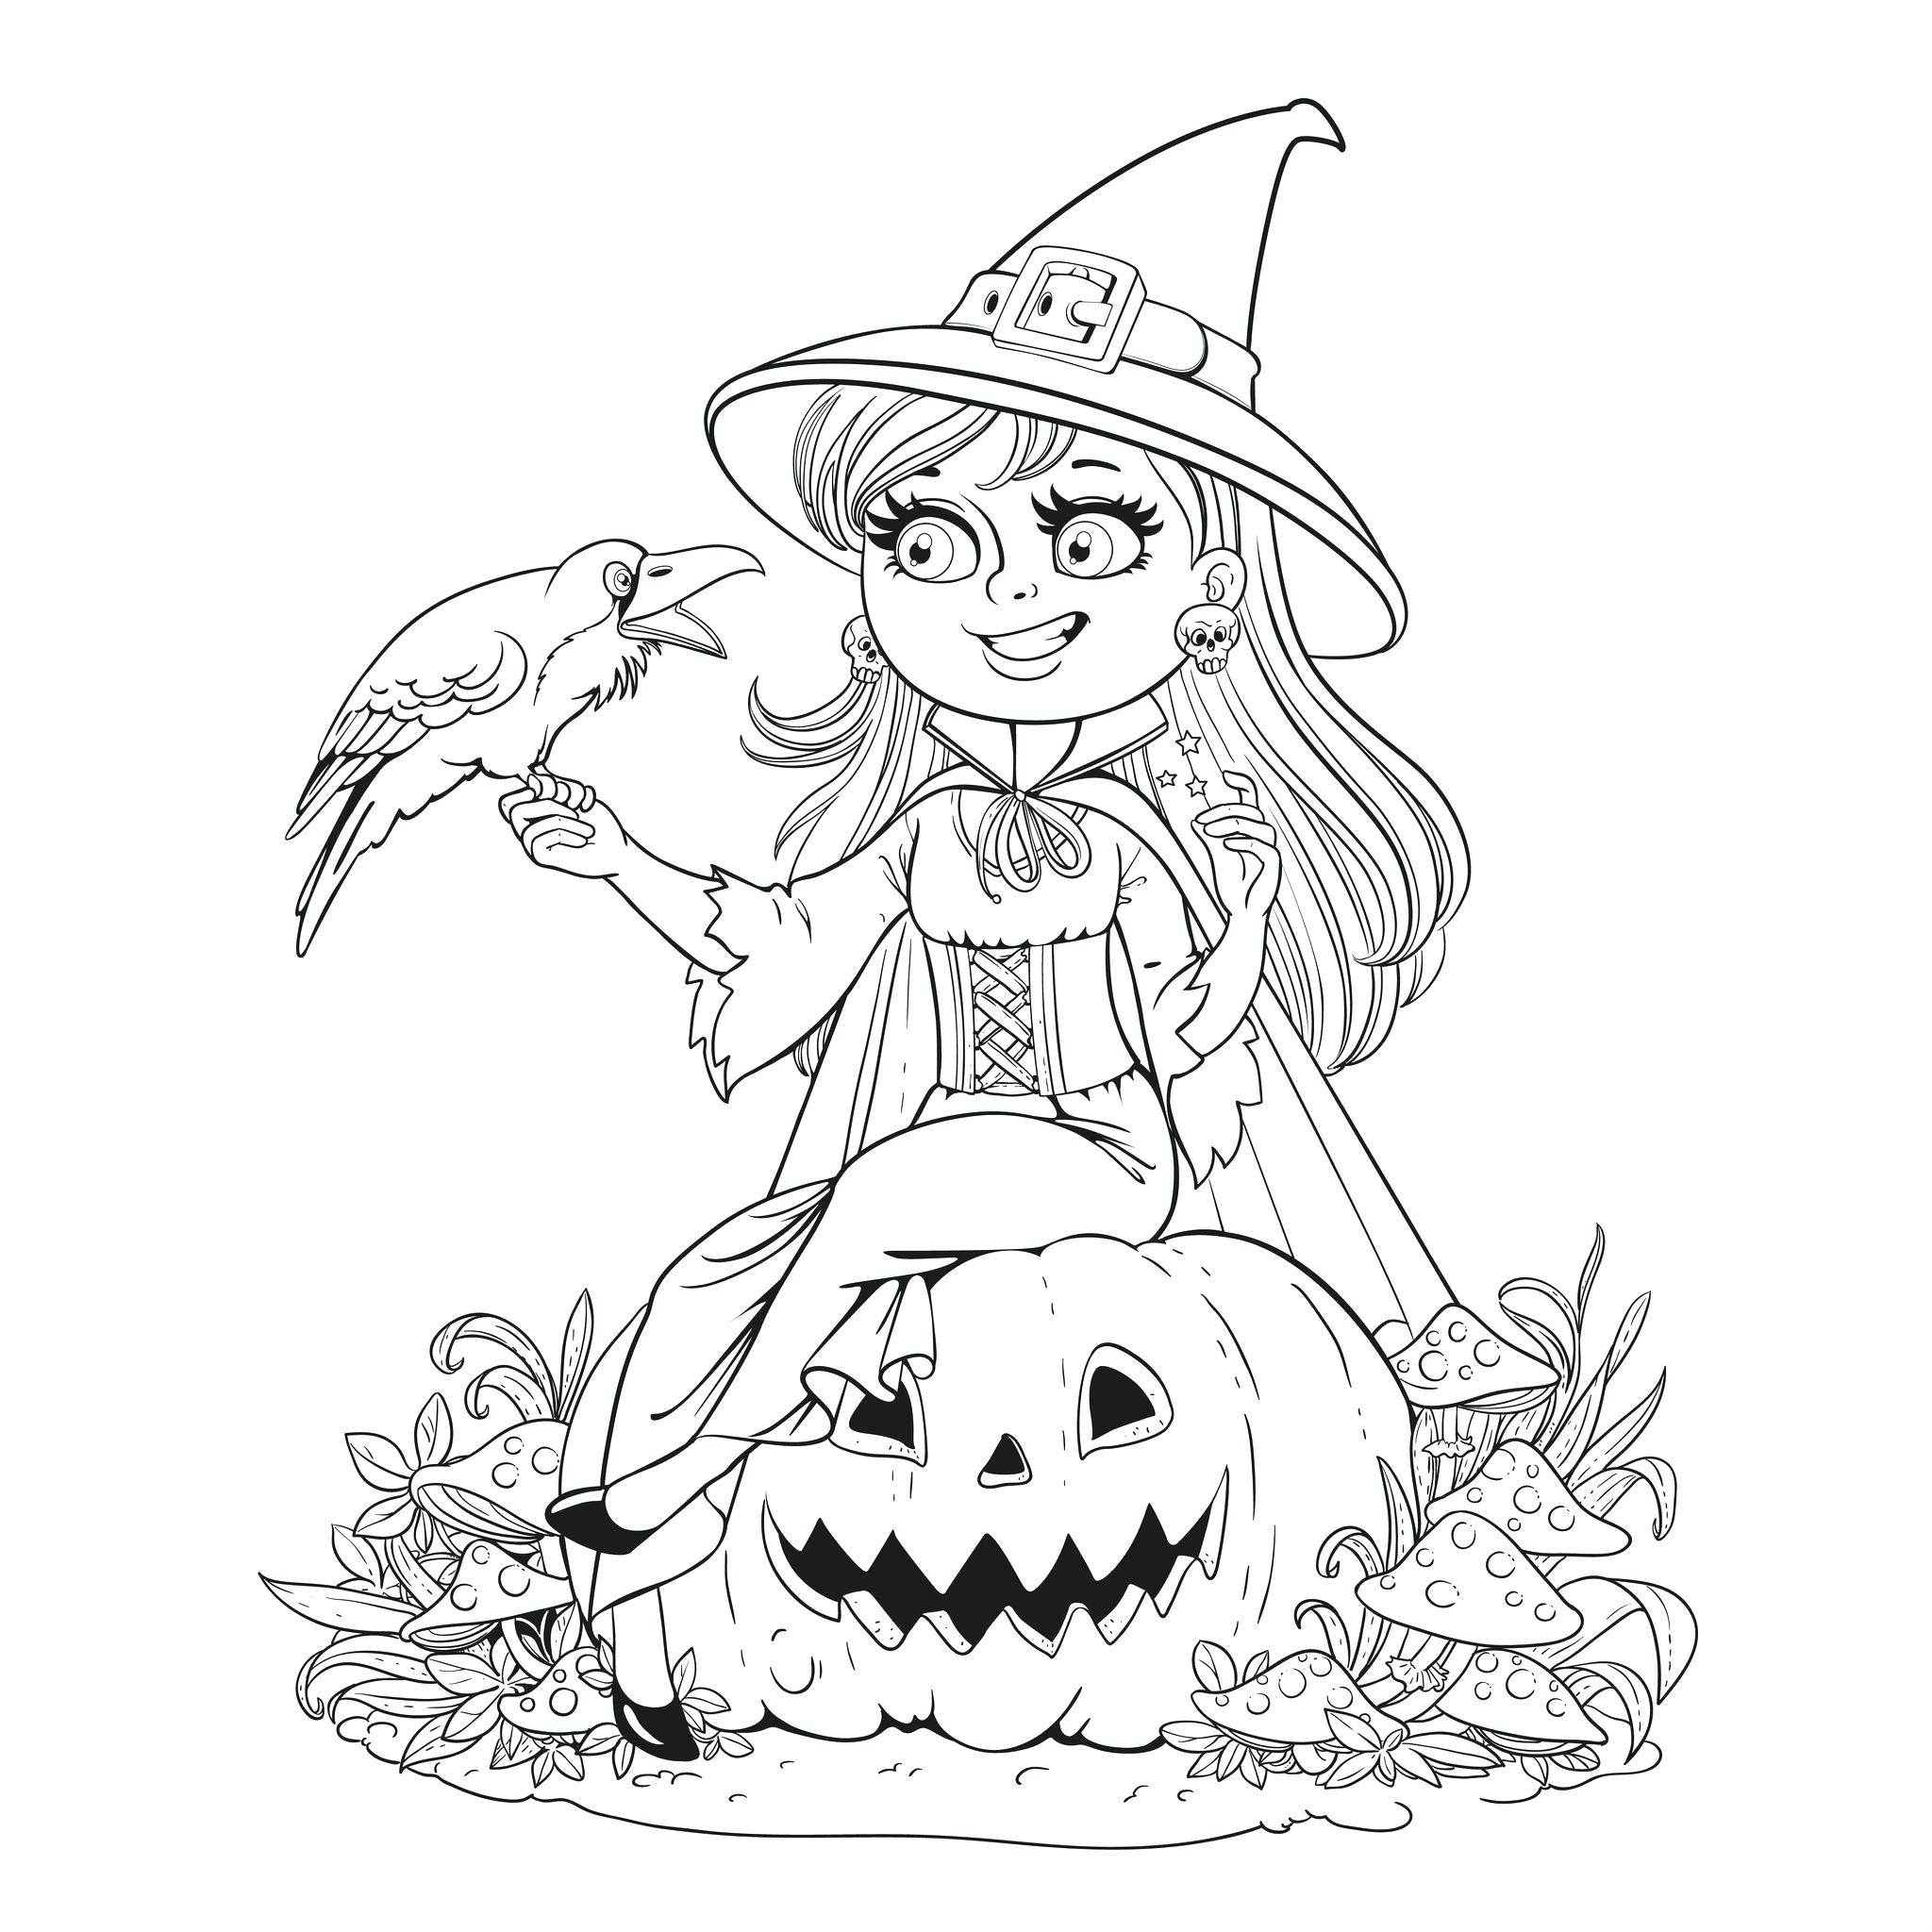 Free Printable Halloween Coloring Page Printable Halloween Coloring Pages To Print Tingameday